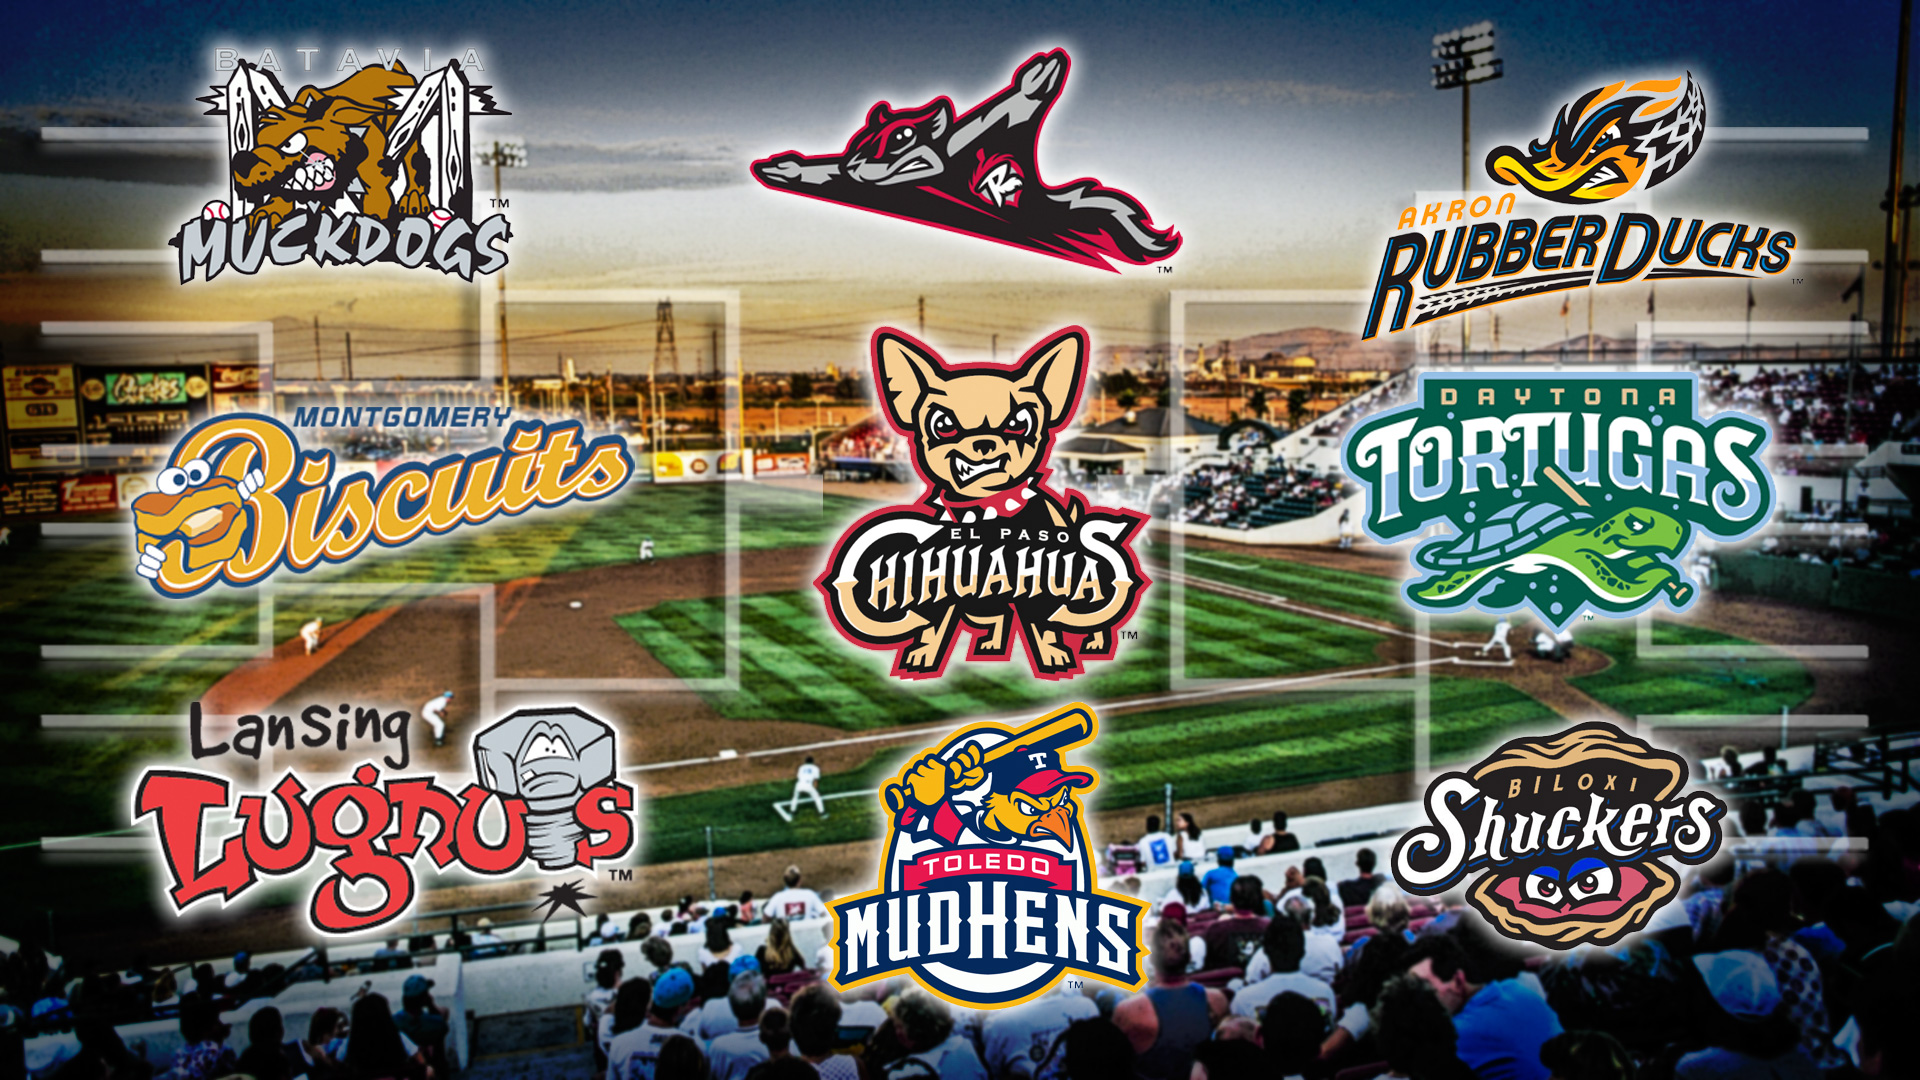 Minor League Baseball's best team name? Vote to decide the ...